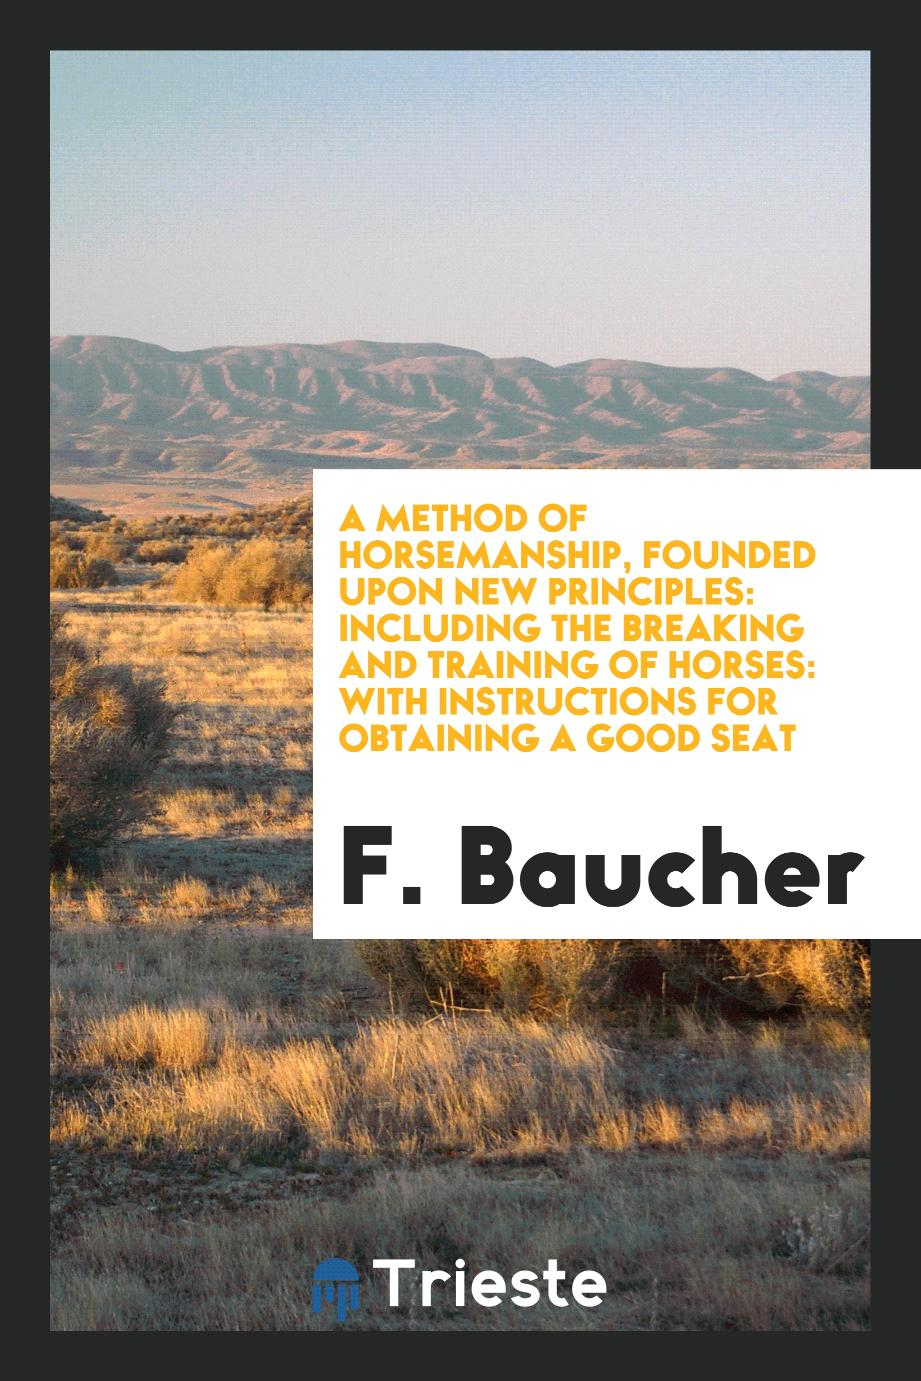 A Method of Horsemanship, Founded upon New Principles: Including the Breaking and Training of Horses: With Instructions for Obtaining a Good Seat